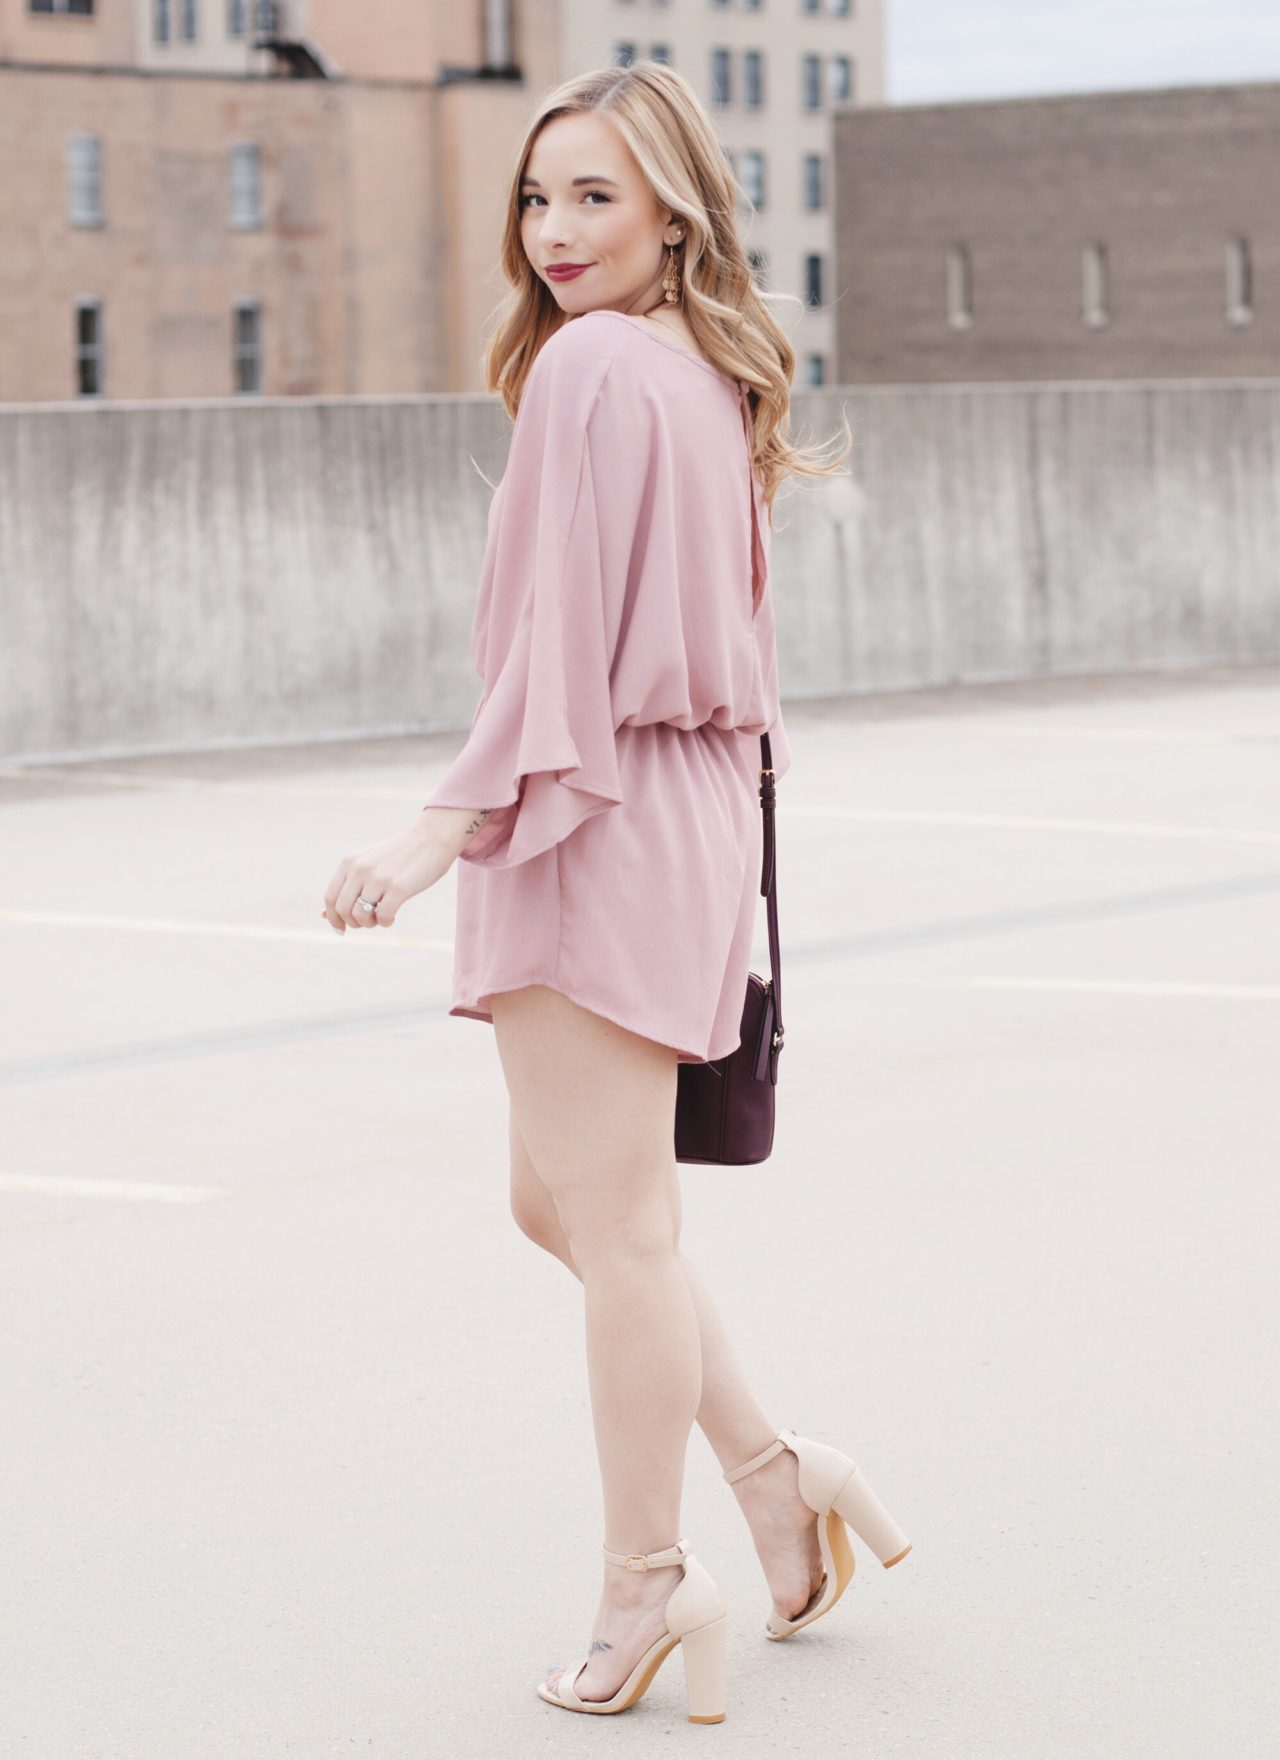 Mauve Romper From The Cheeky Lemon